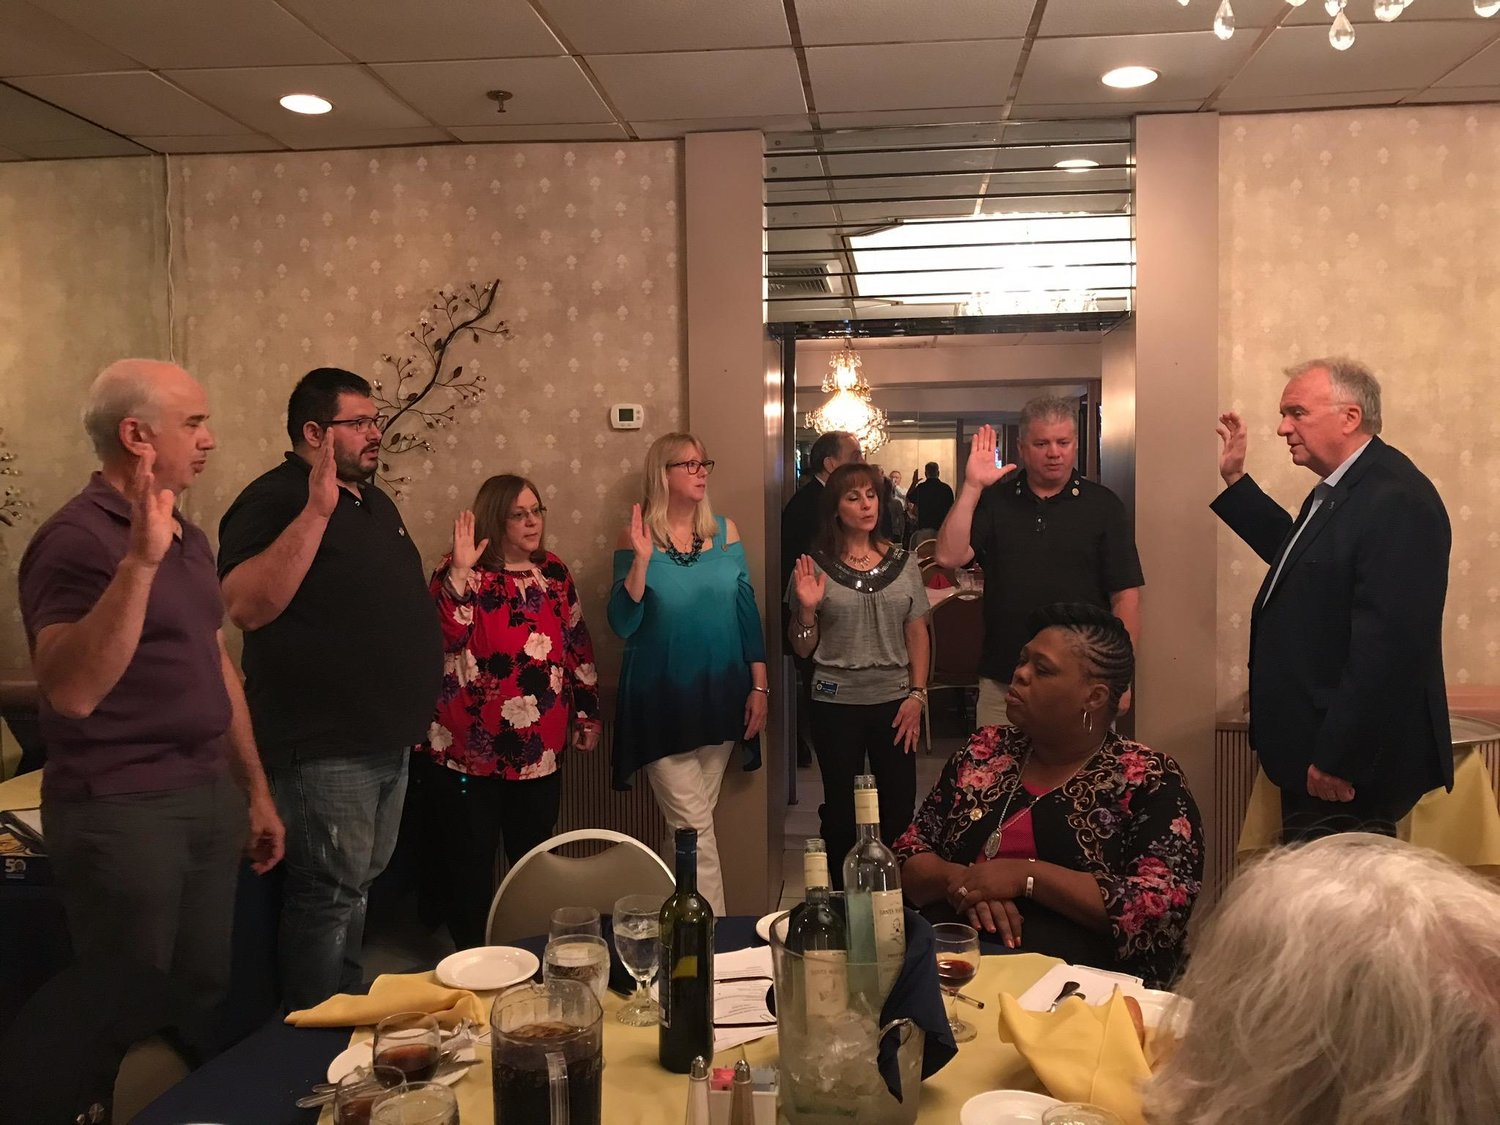 West Hempstead Lions Club President Frank Parise, far left, first Vice President Steven Oster; Secretary Tonie Jean-Louis; Treasurer Sue Reichert; Tail Twister Mia Murphy and Lion Tamer Joe Murphy were sworn in by Past International President Al Brandel last month.